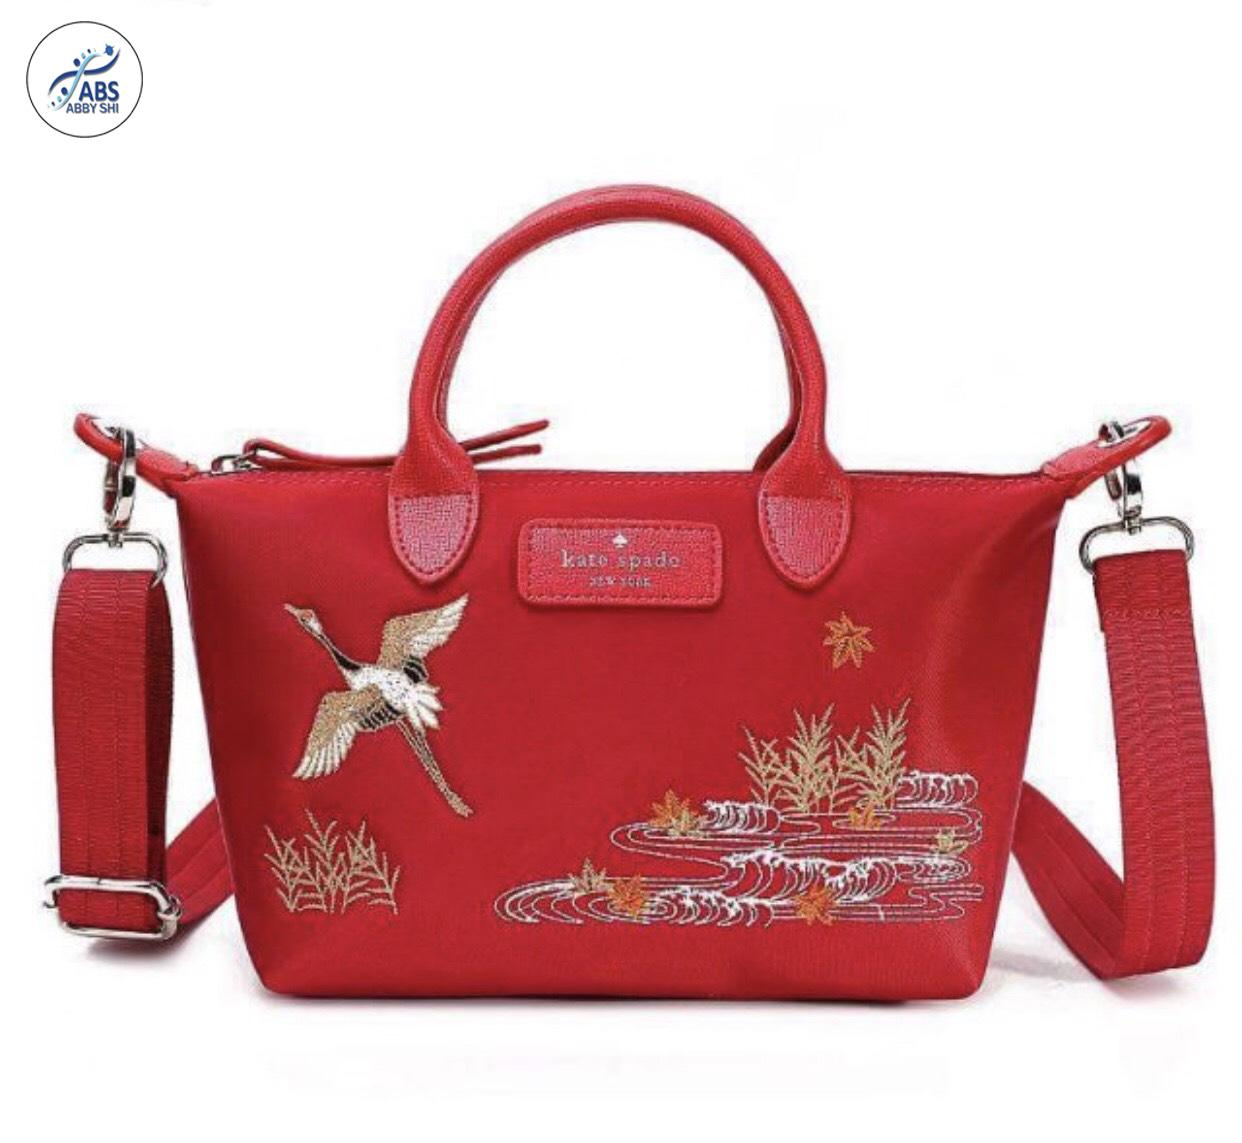 728f514173 Top Handle Bags for sale - Womens Handle Bags online brands